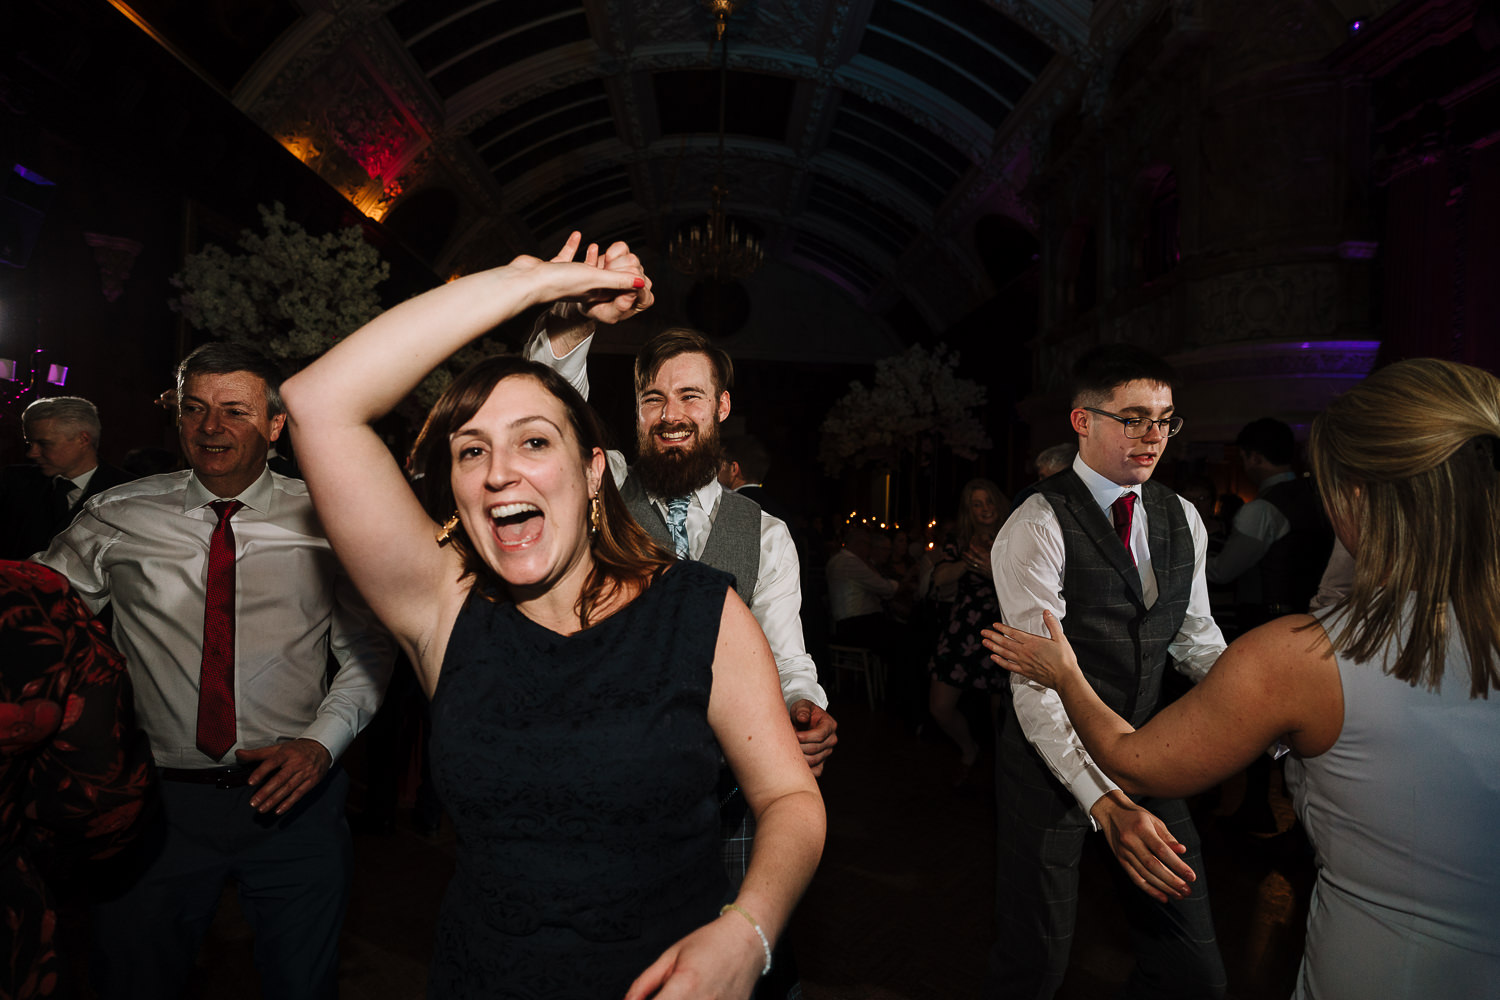 Ceilidh dancing at Thornton Manor